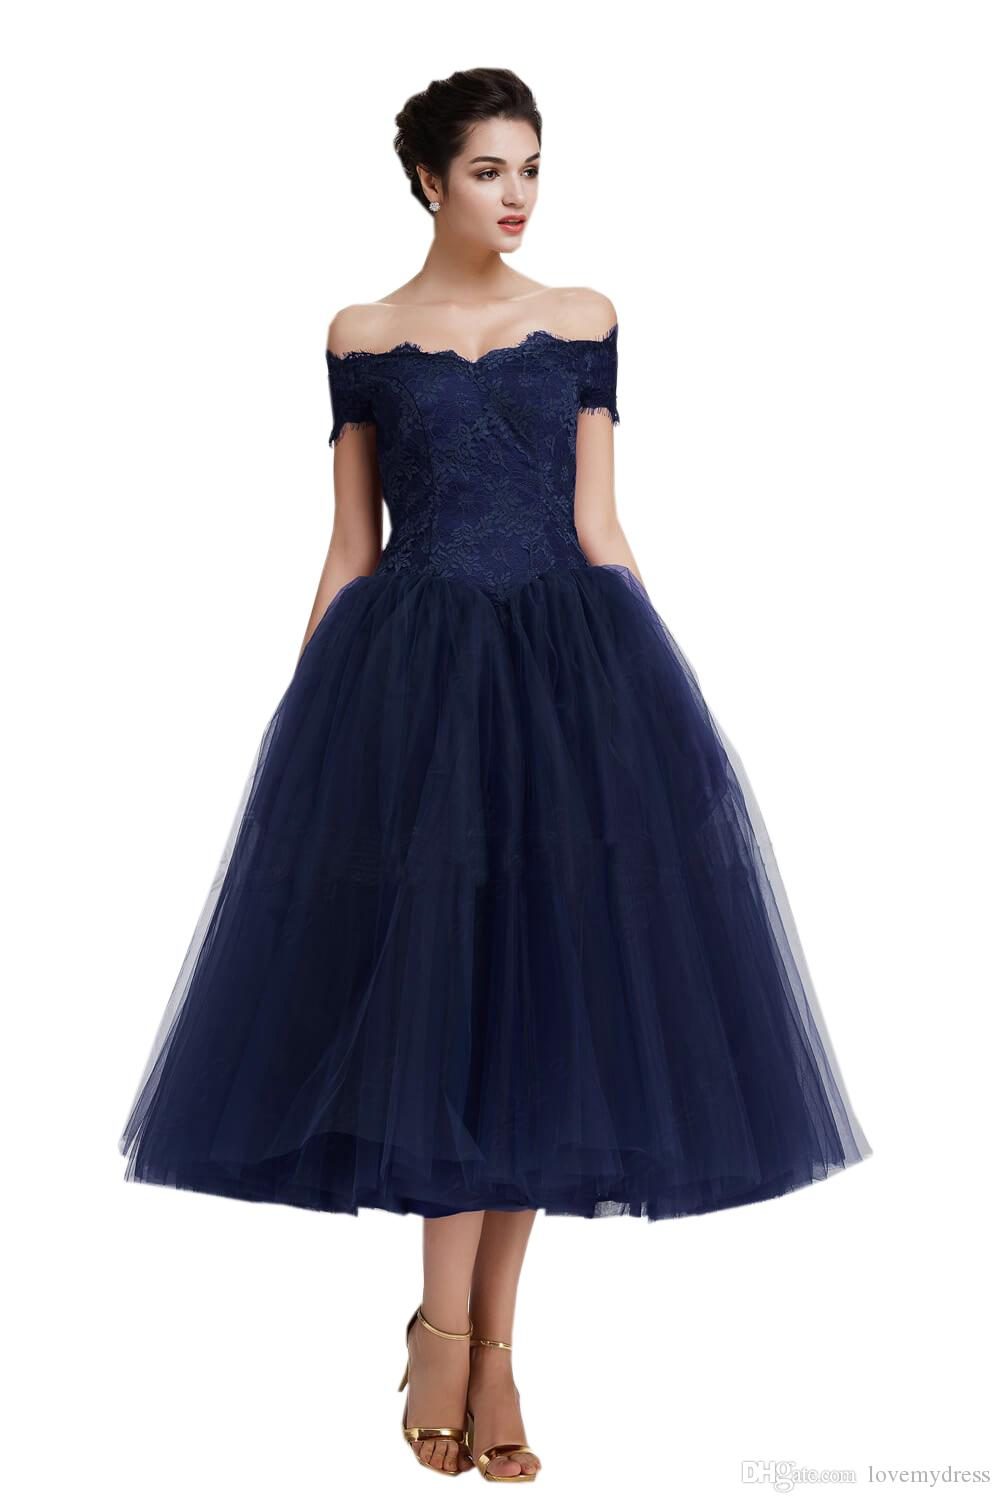 Short Cheap Evening Formal Gowns With Sleeves A line Tulle Lace Off shoulders Zipper Back Homecoming Prom Dress Graduation Gowns For Girls